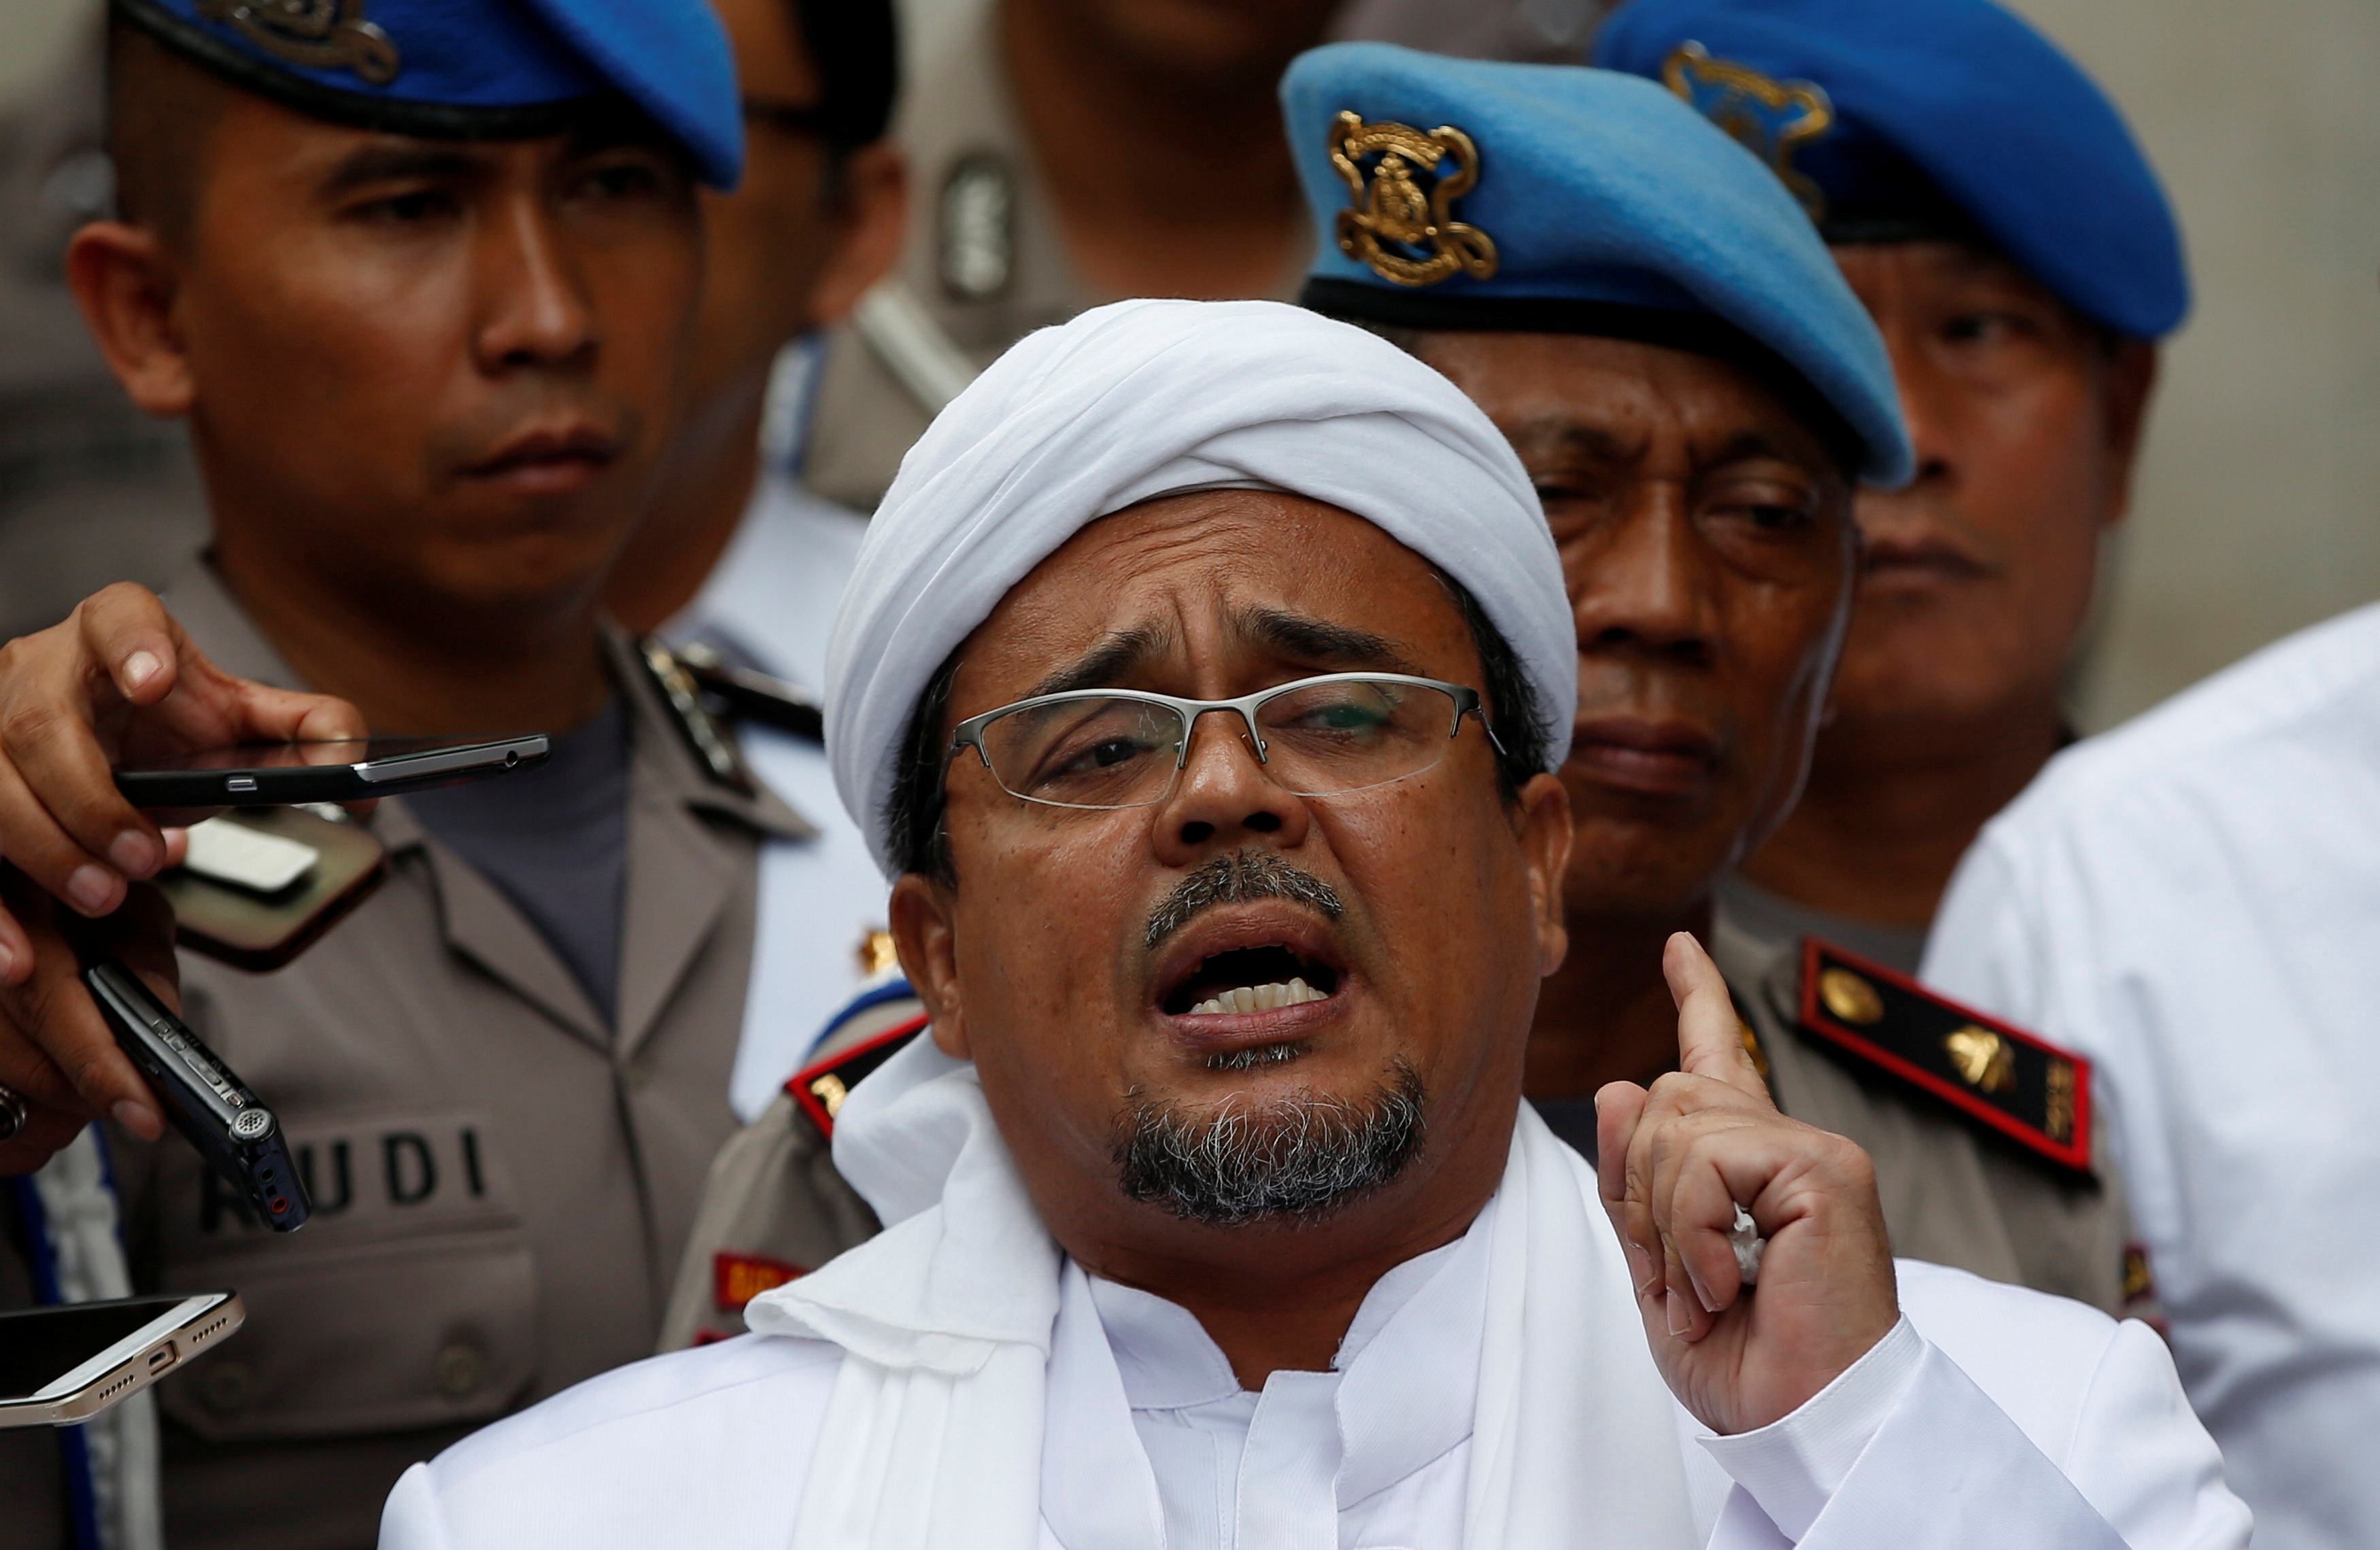 Habib Rizieq, gestures while speaking to the media upon his arrival at Jakarta Police headquarters in Jakarta, Indonesia February 1, 2017. R